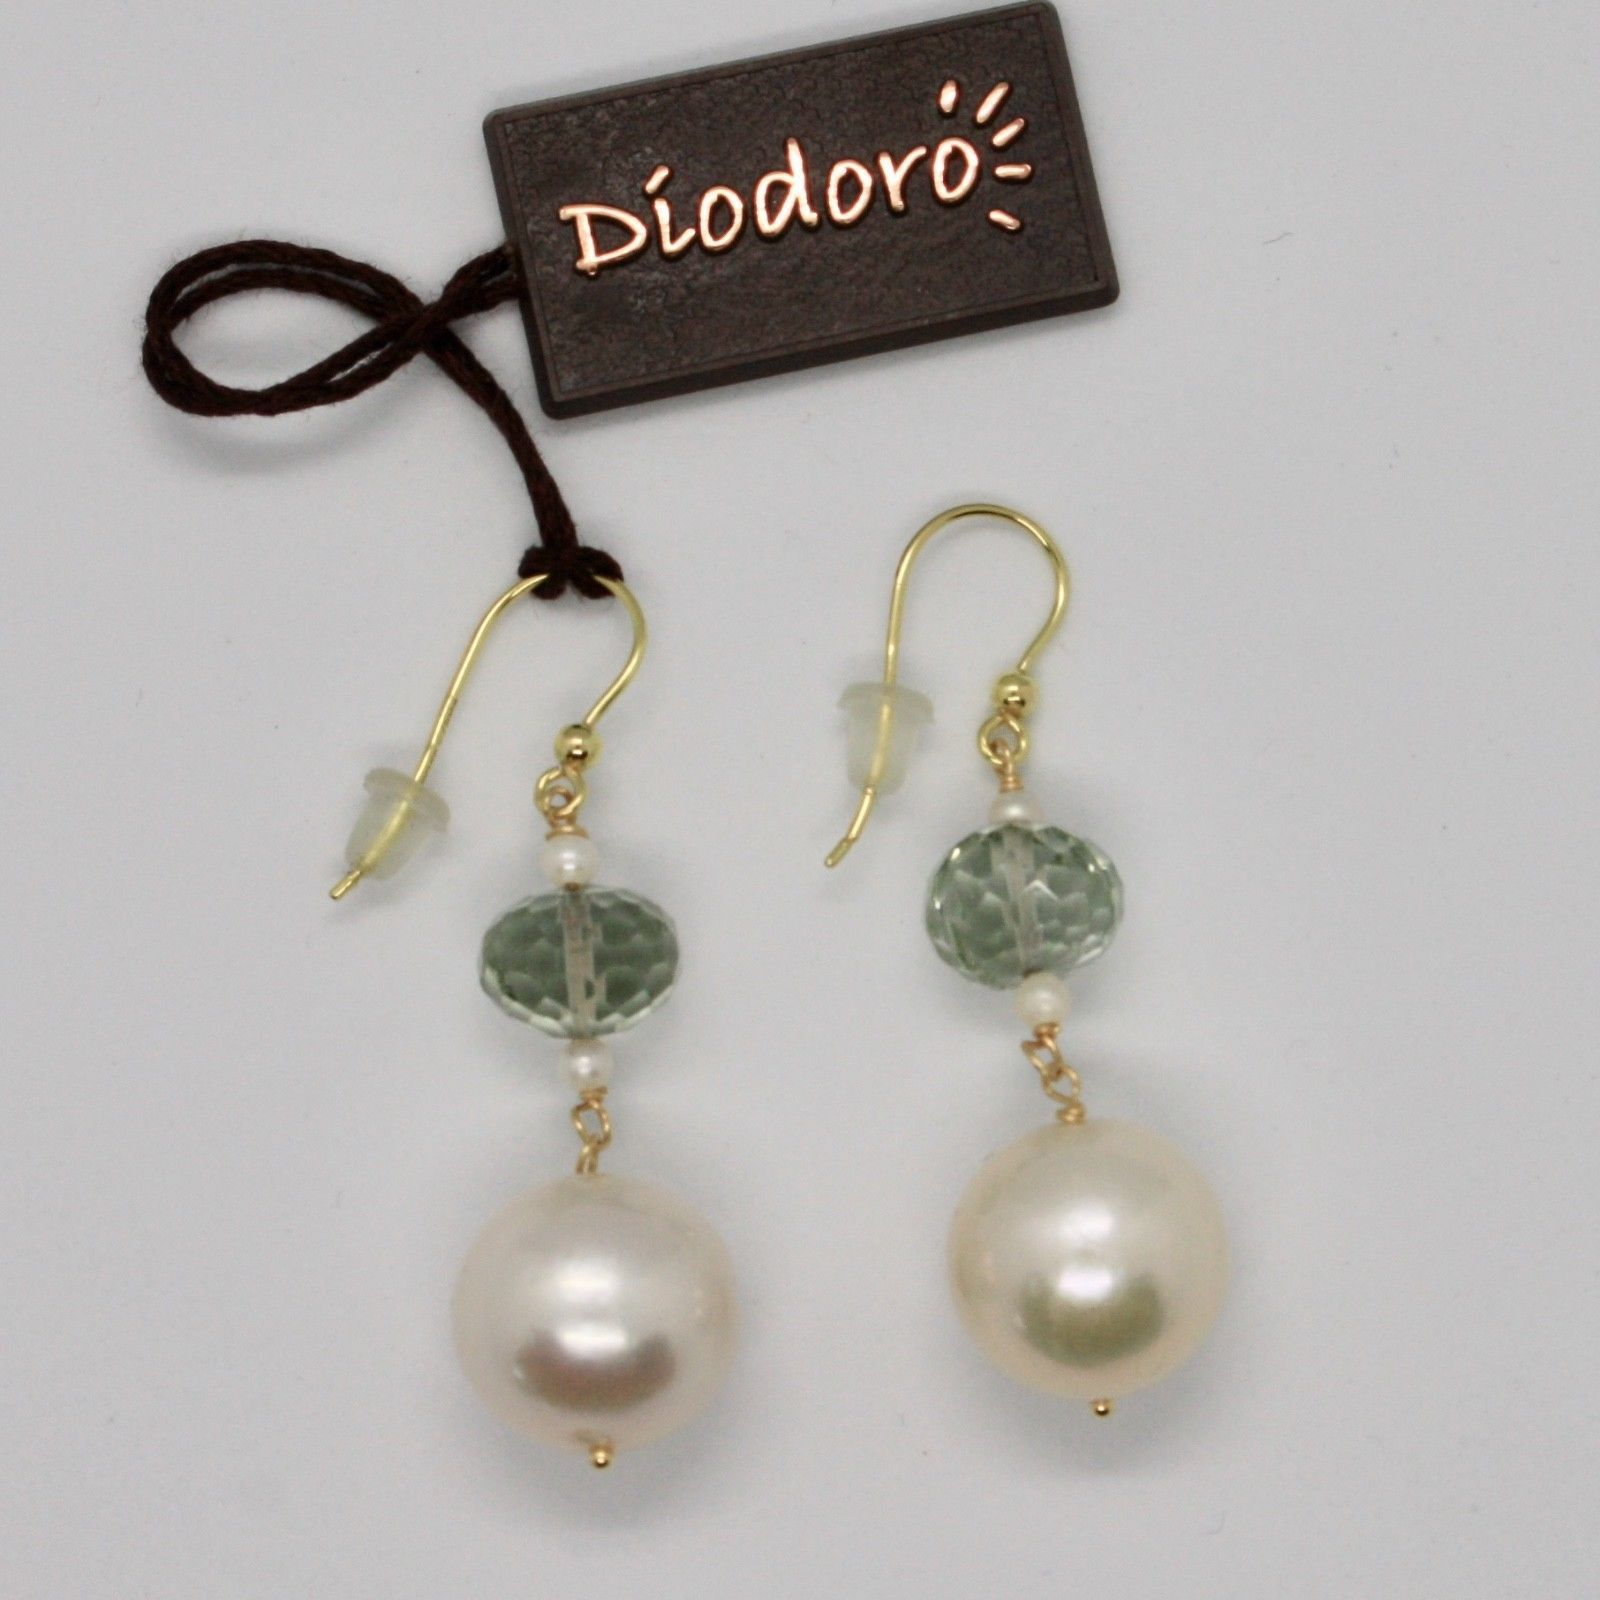 SOLID 18K YELLOW GOLD EARRINGS WITH WHITE PEARLS AND PRASIOLITE MADE IN ITALY